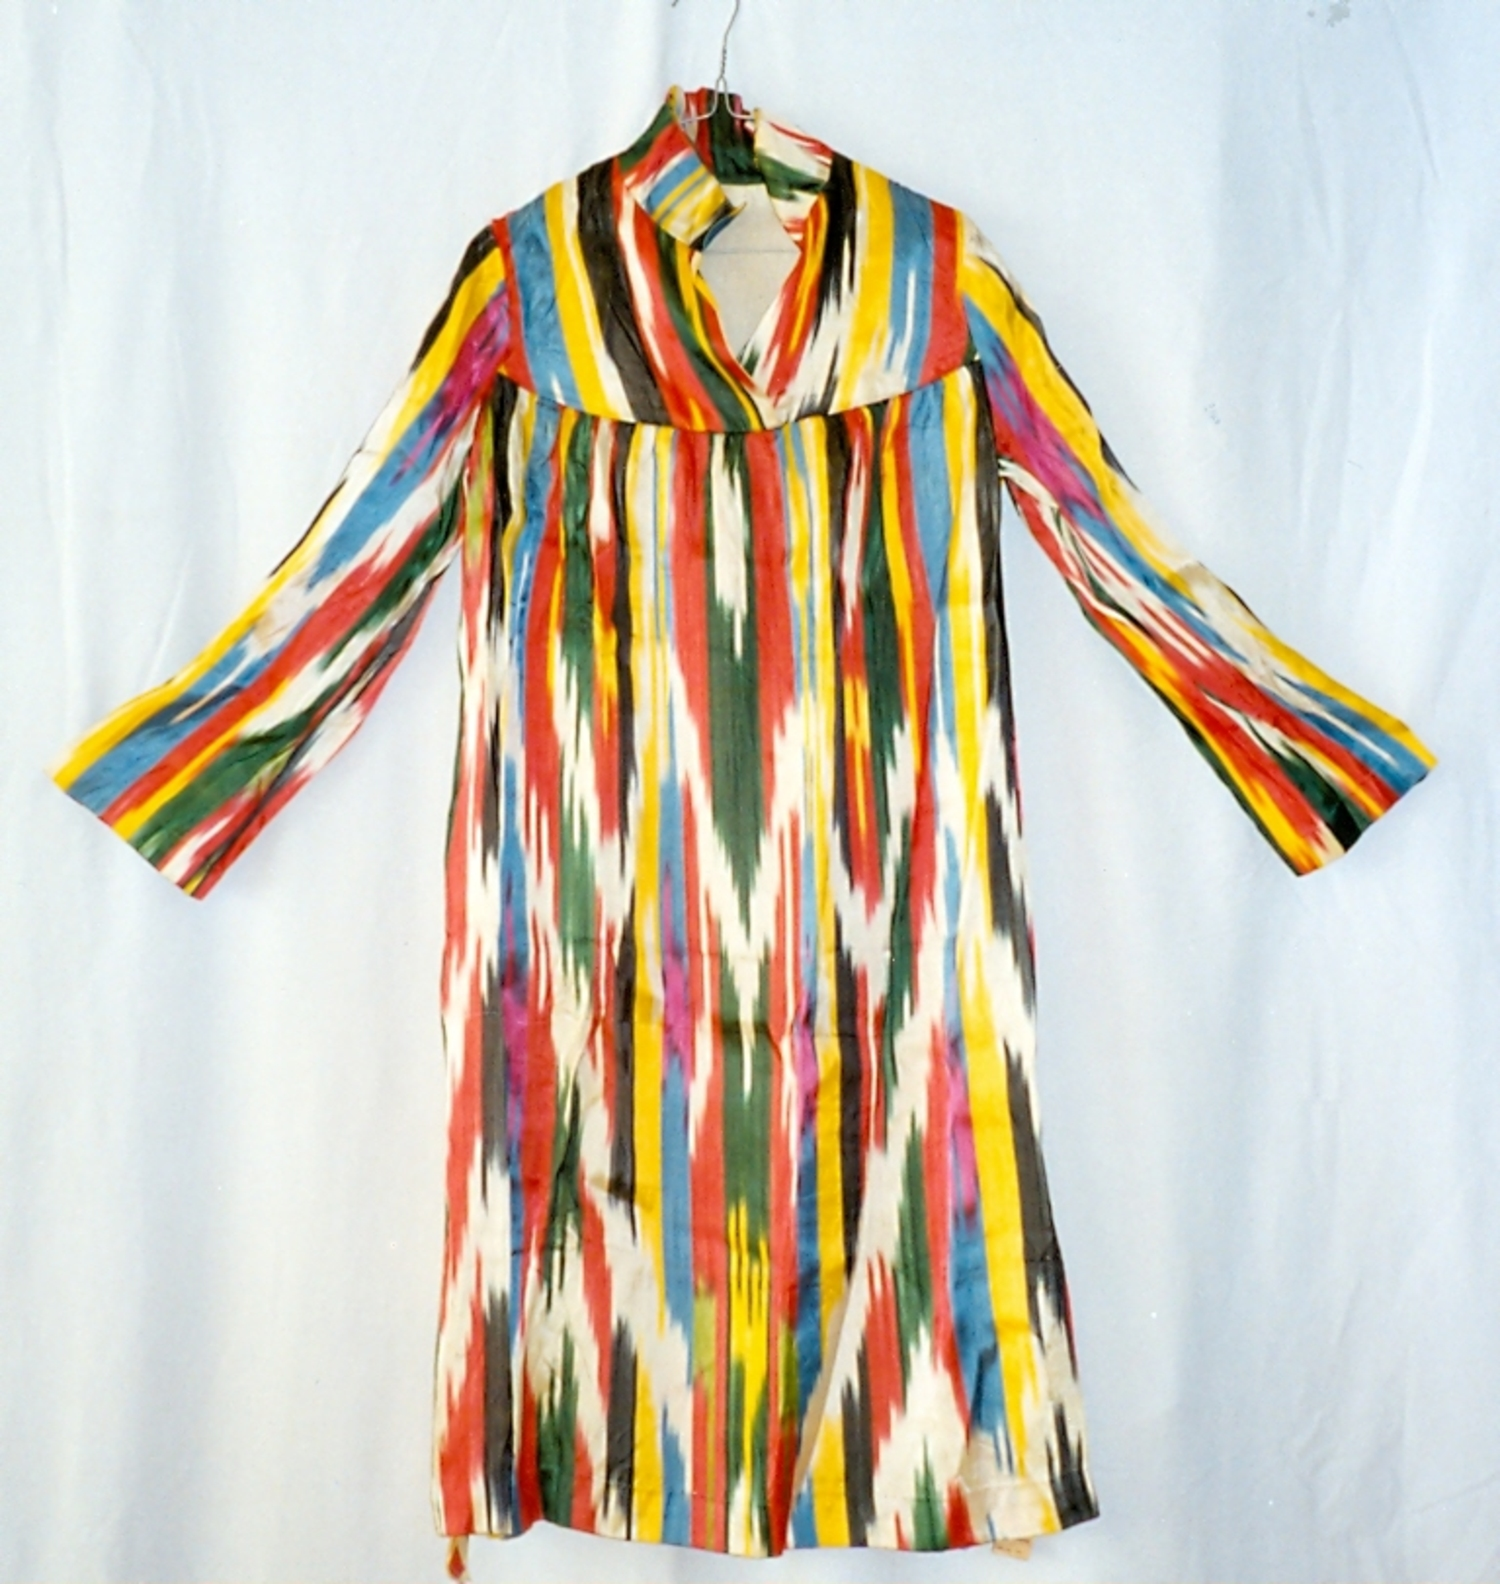 Dress for an Uzbek woman, 1980s. TRC 1997.0122